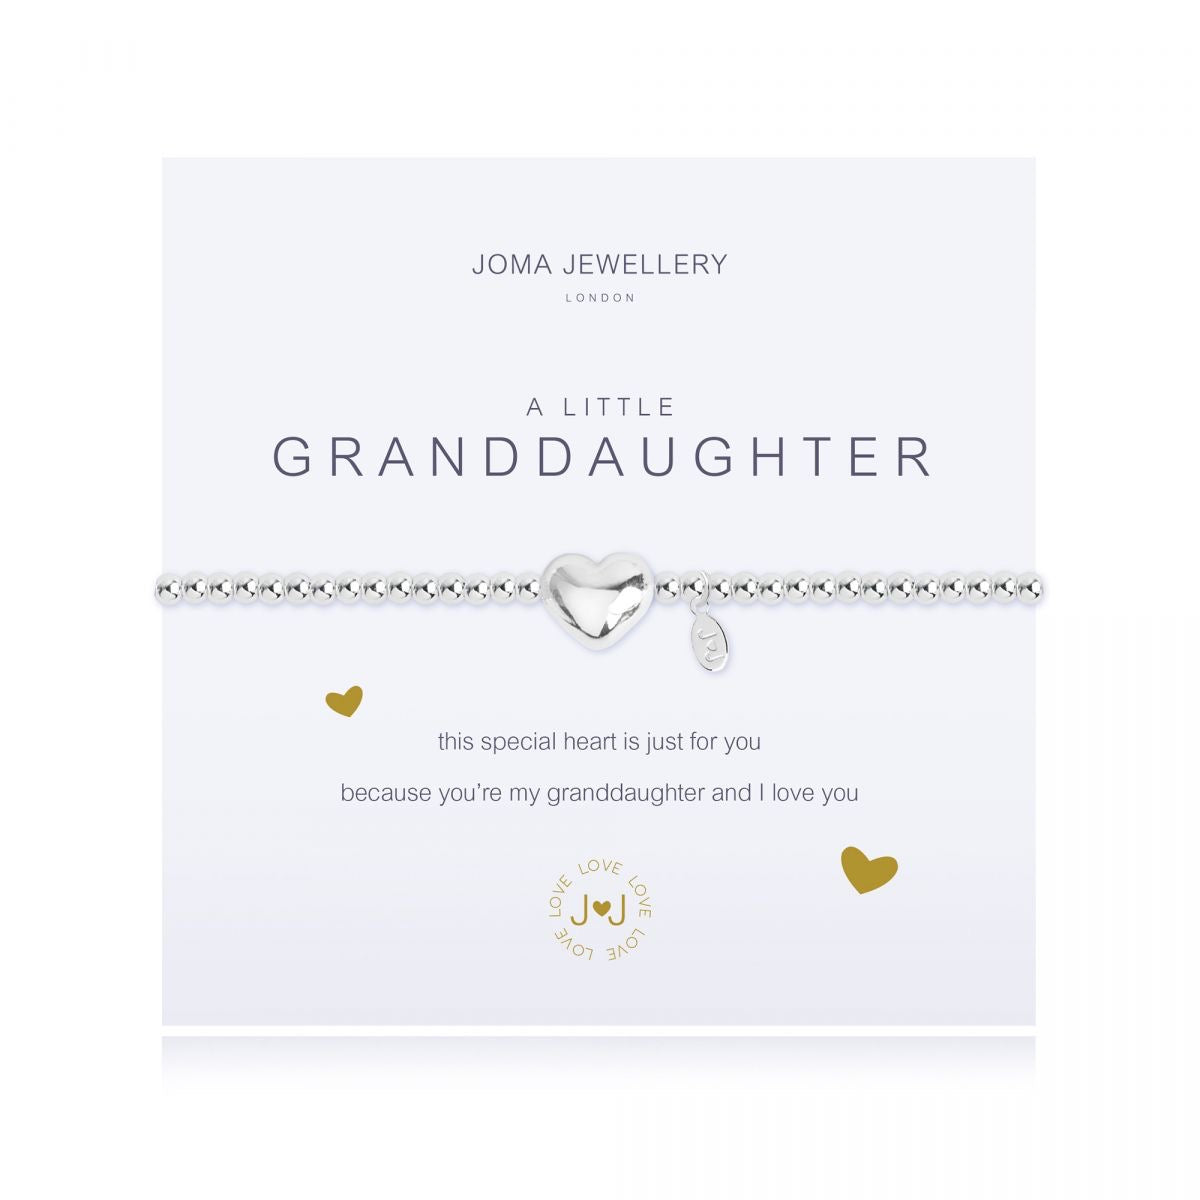 Joma Jewellery 'A Little' Granddaughter